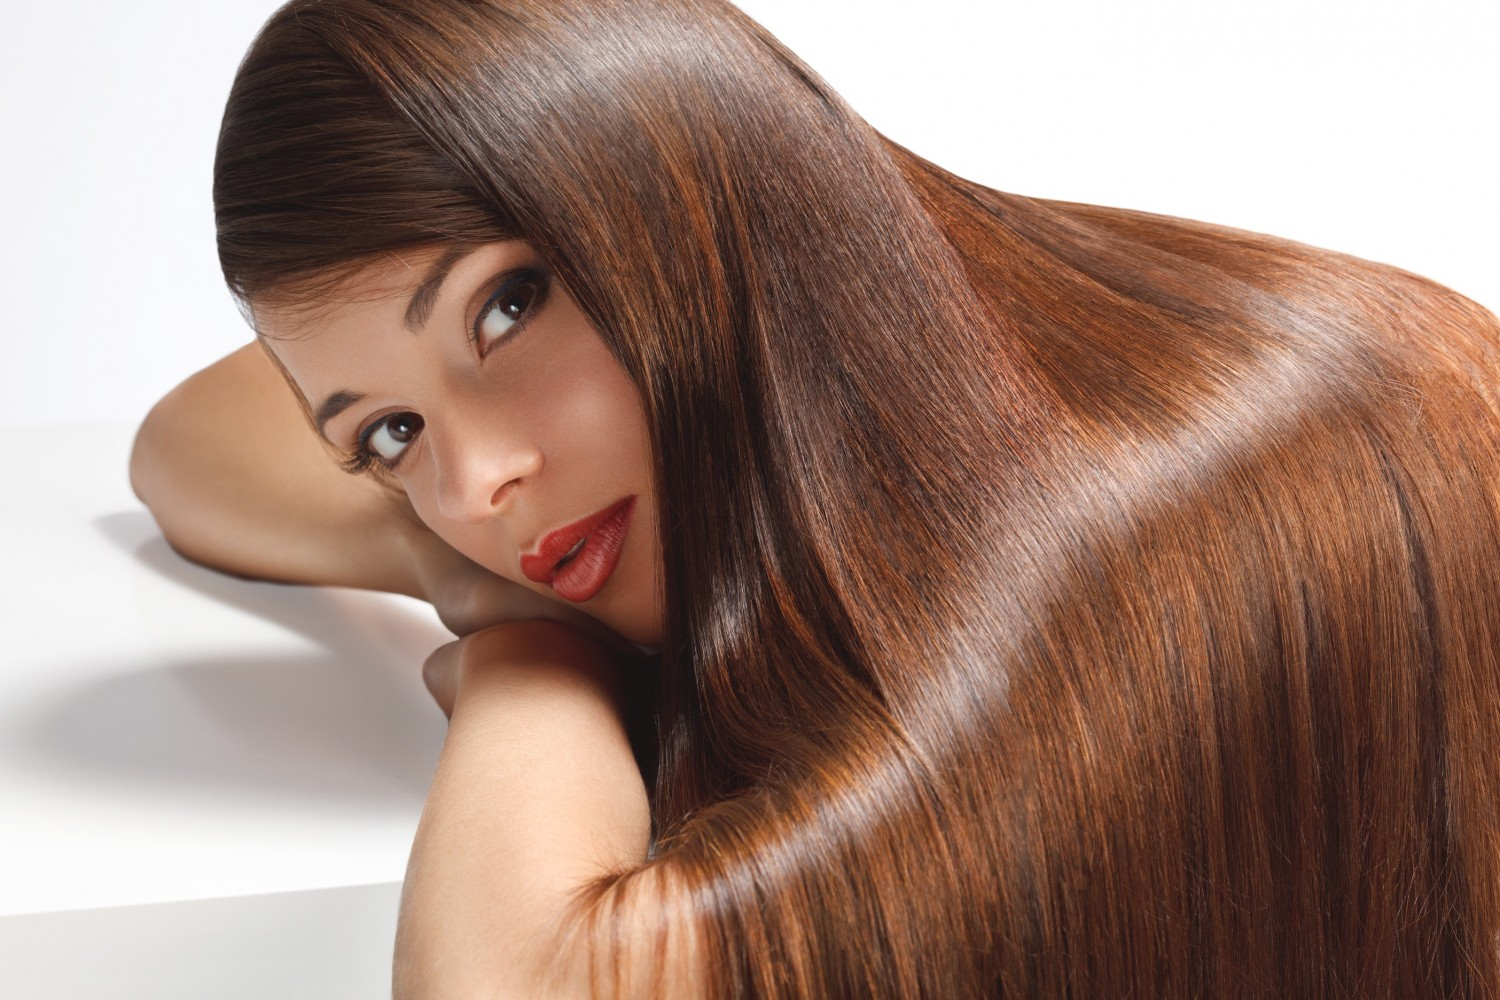 bm_high-quality-image-woman-with-smooth-hair_42600612-1500x1000